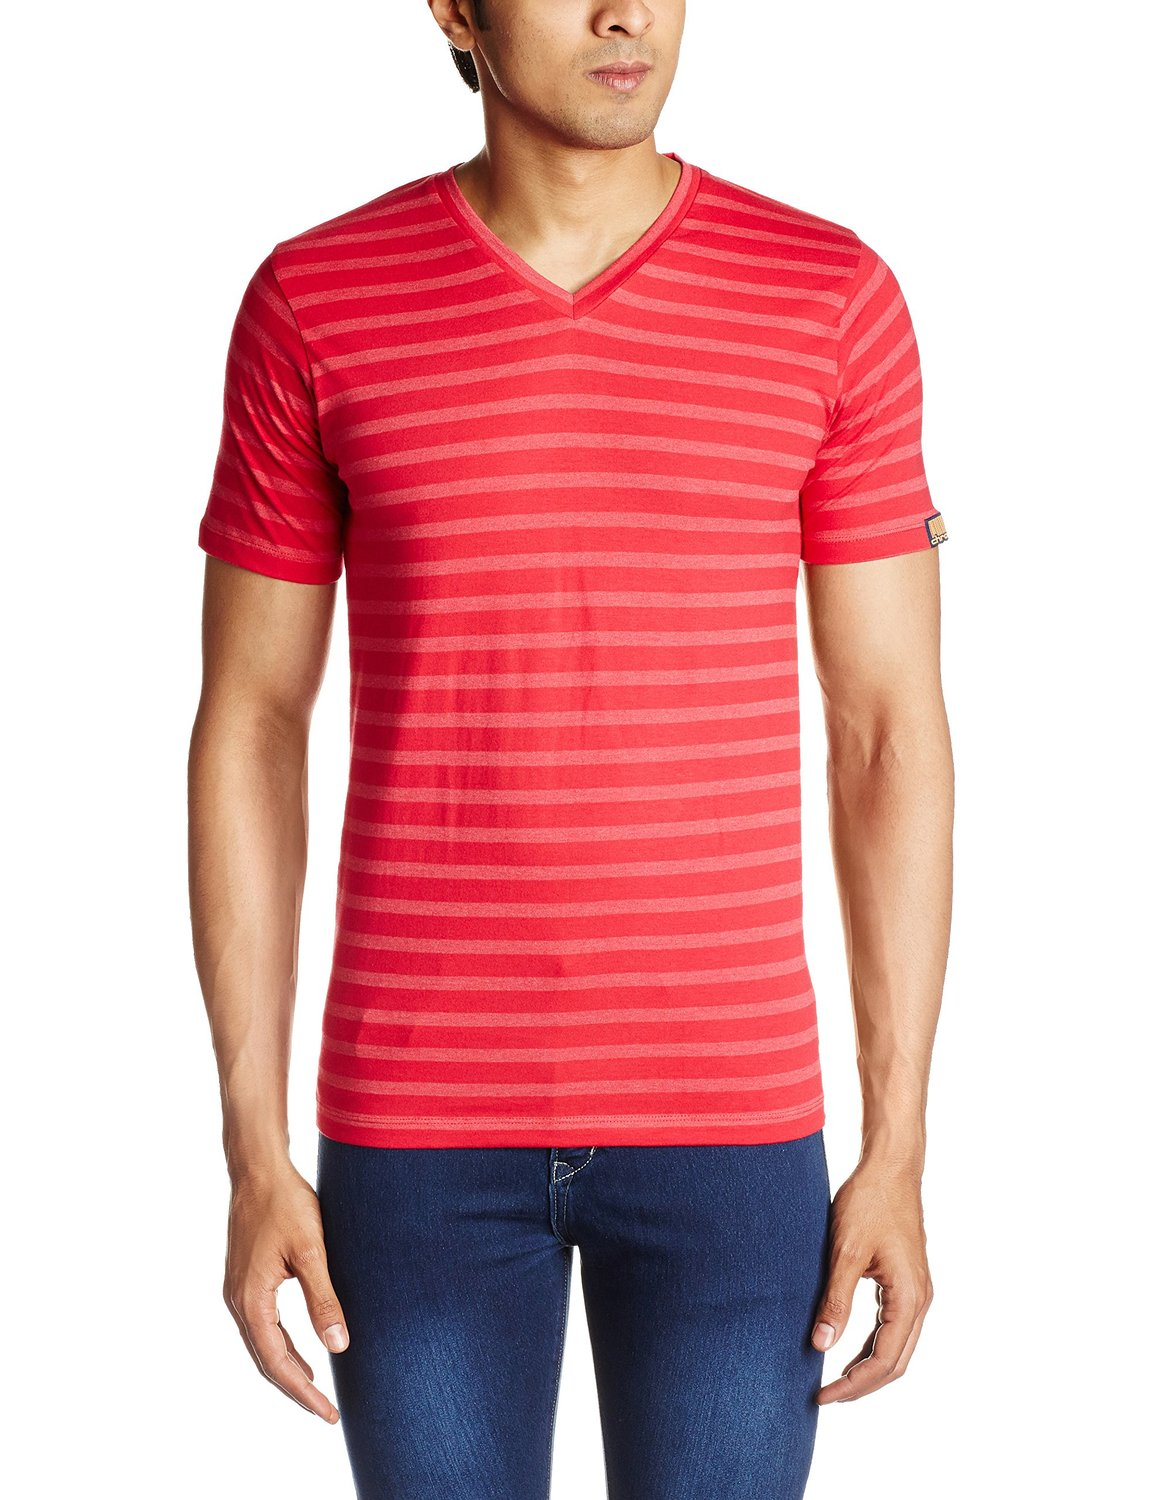 Chromozome Men's Cotton T-Shirt for Rs 159 (60% off)